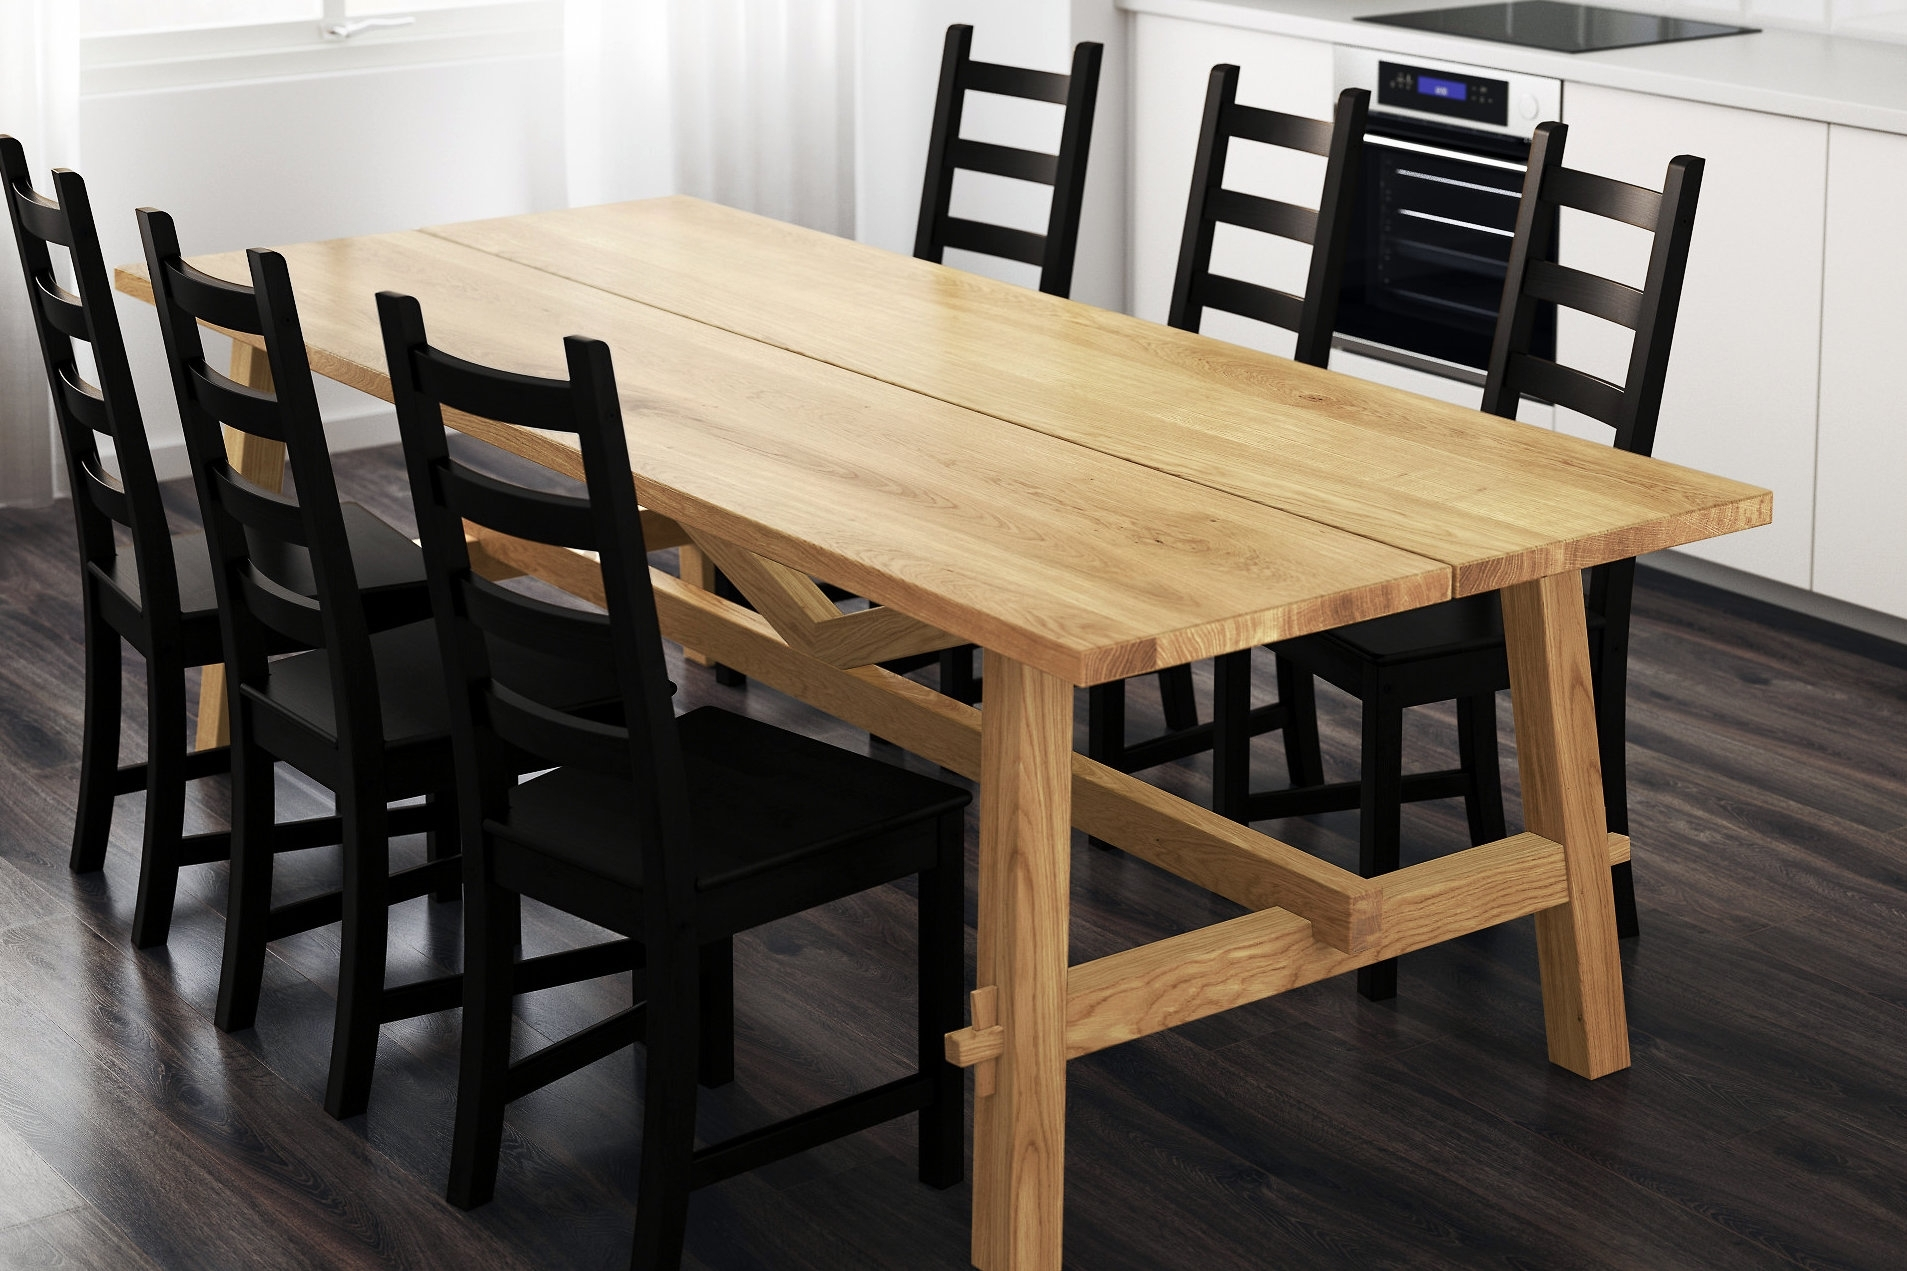 Get The Best Wood Table For Dining – Furnish Ideas Within Most Recent Teagan Extension Dining Tables (View 14 of 20)